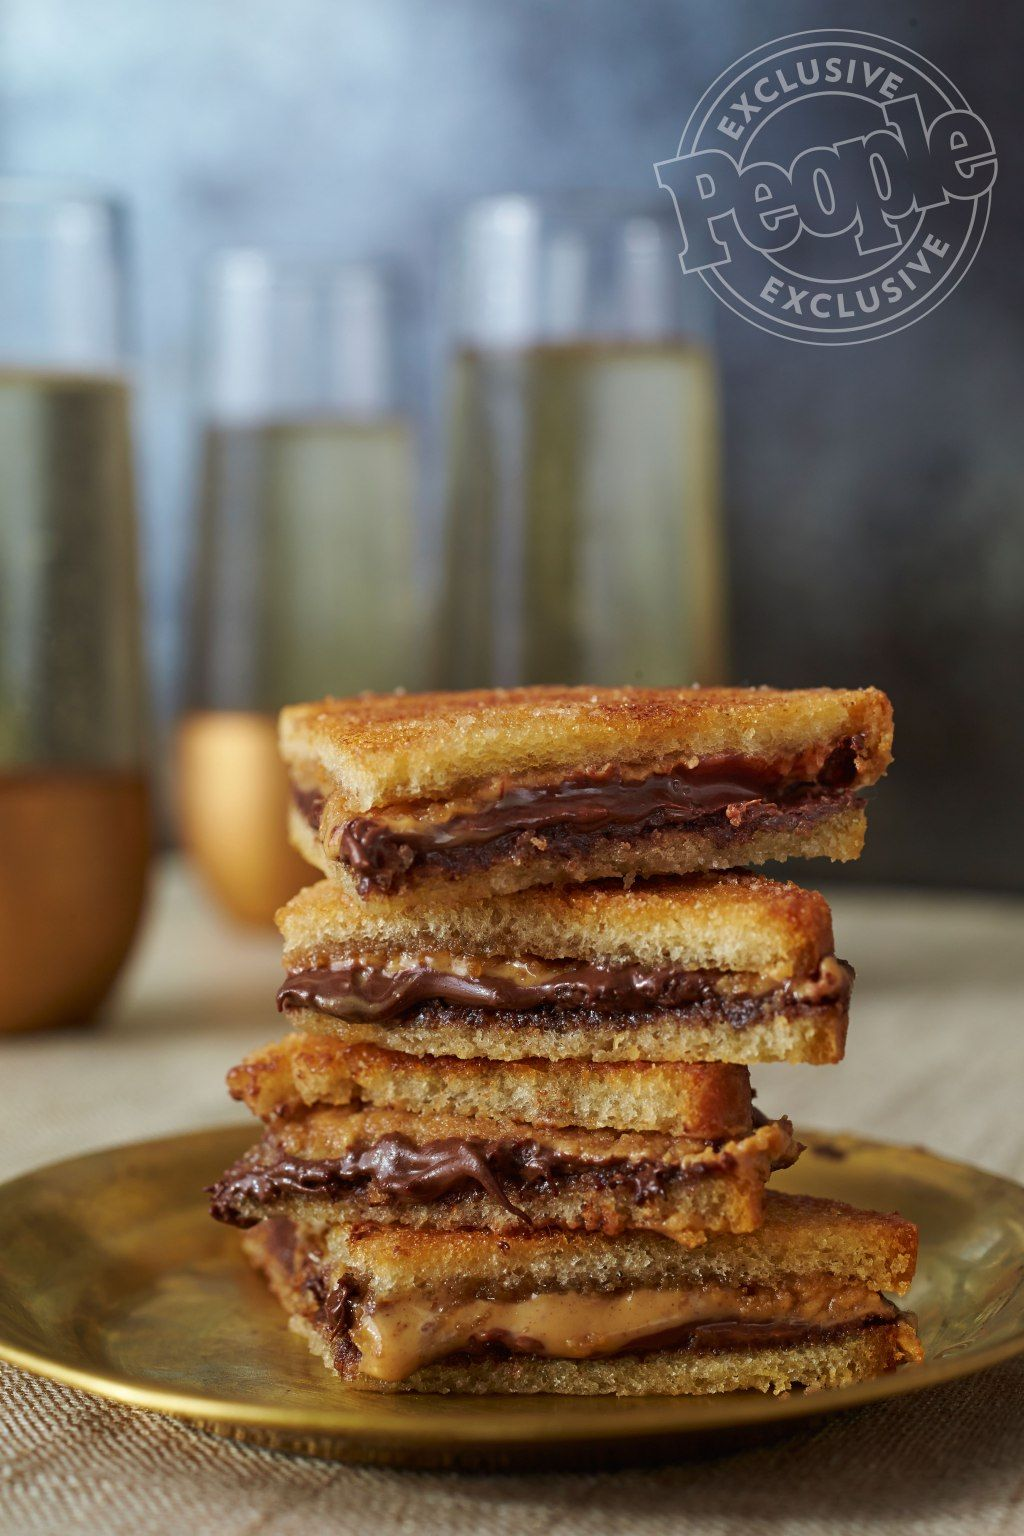 Jacques Pepin's Chocolate